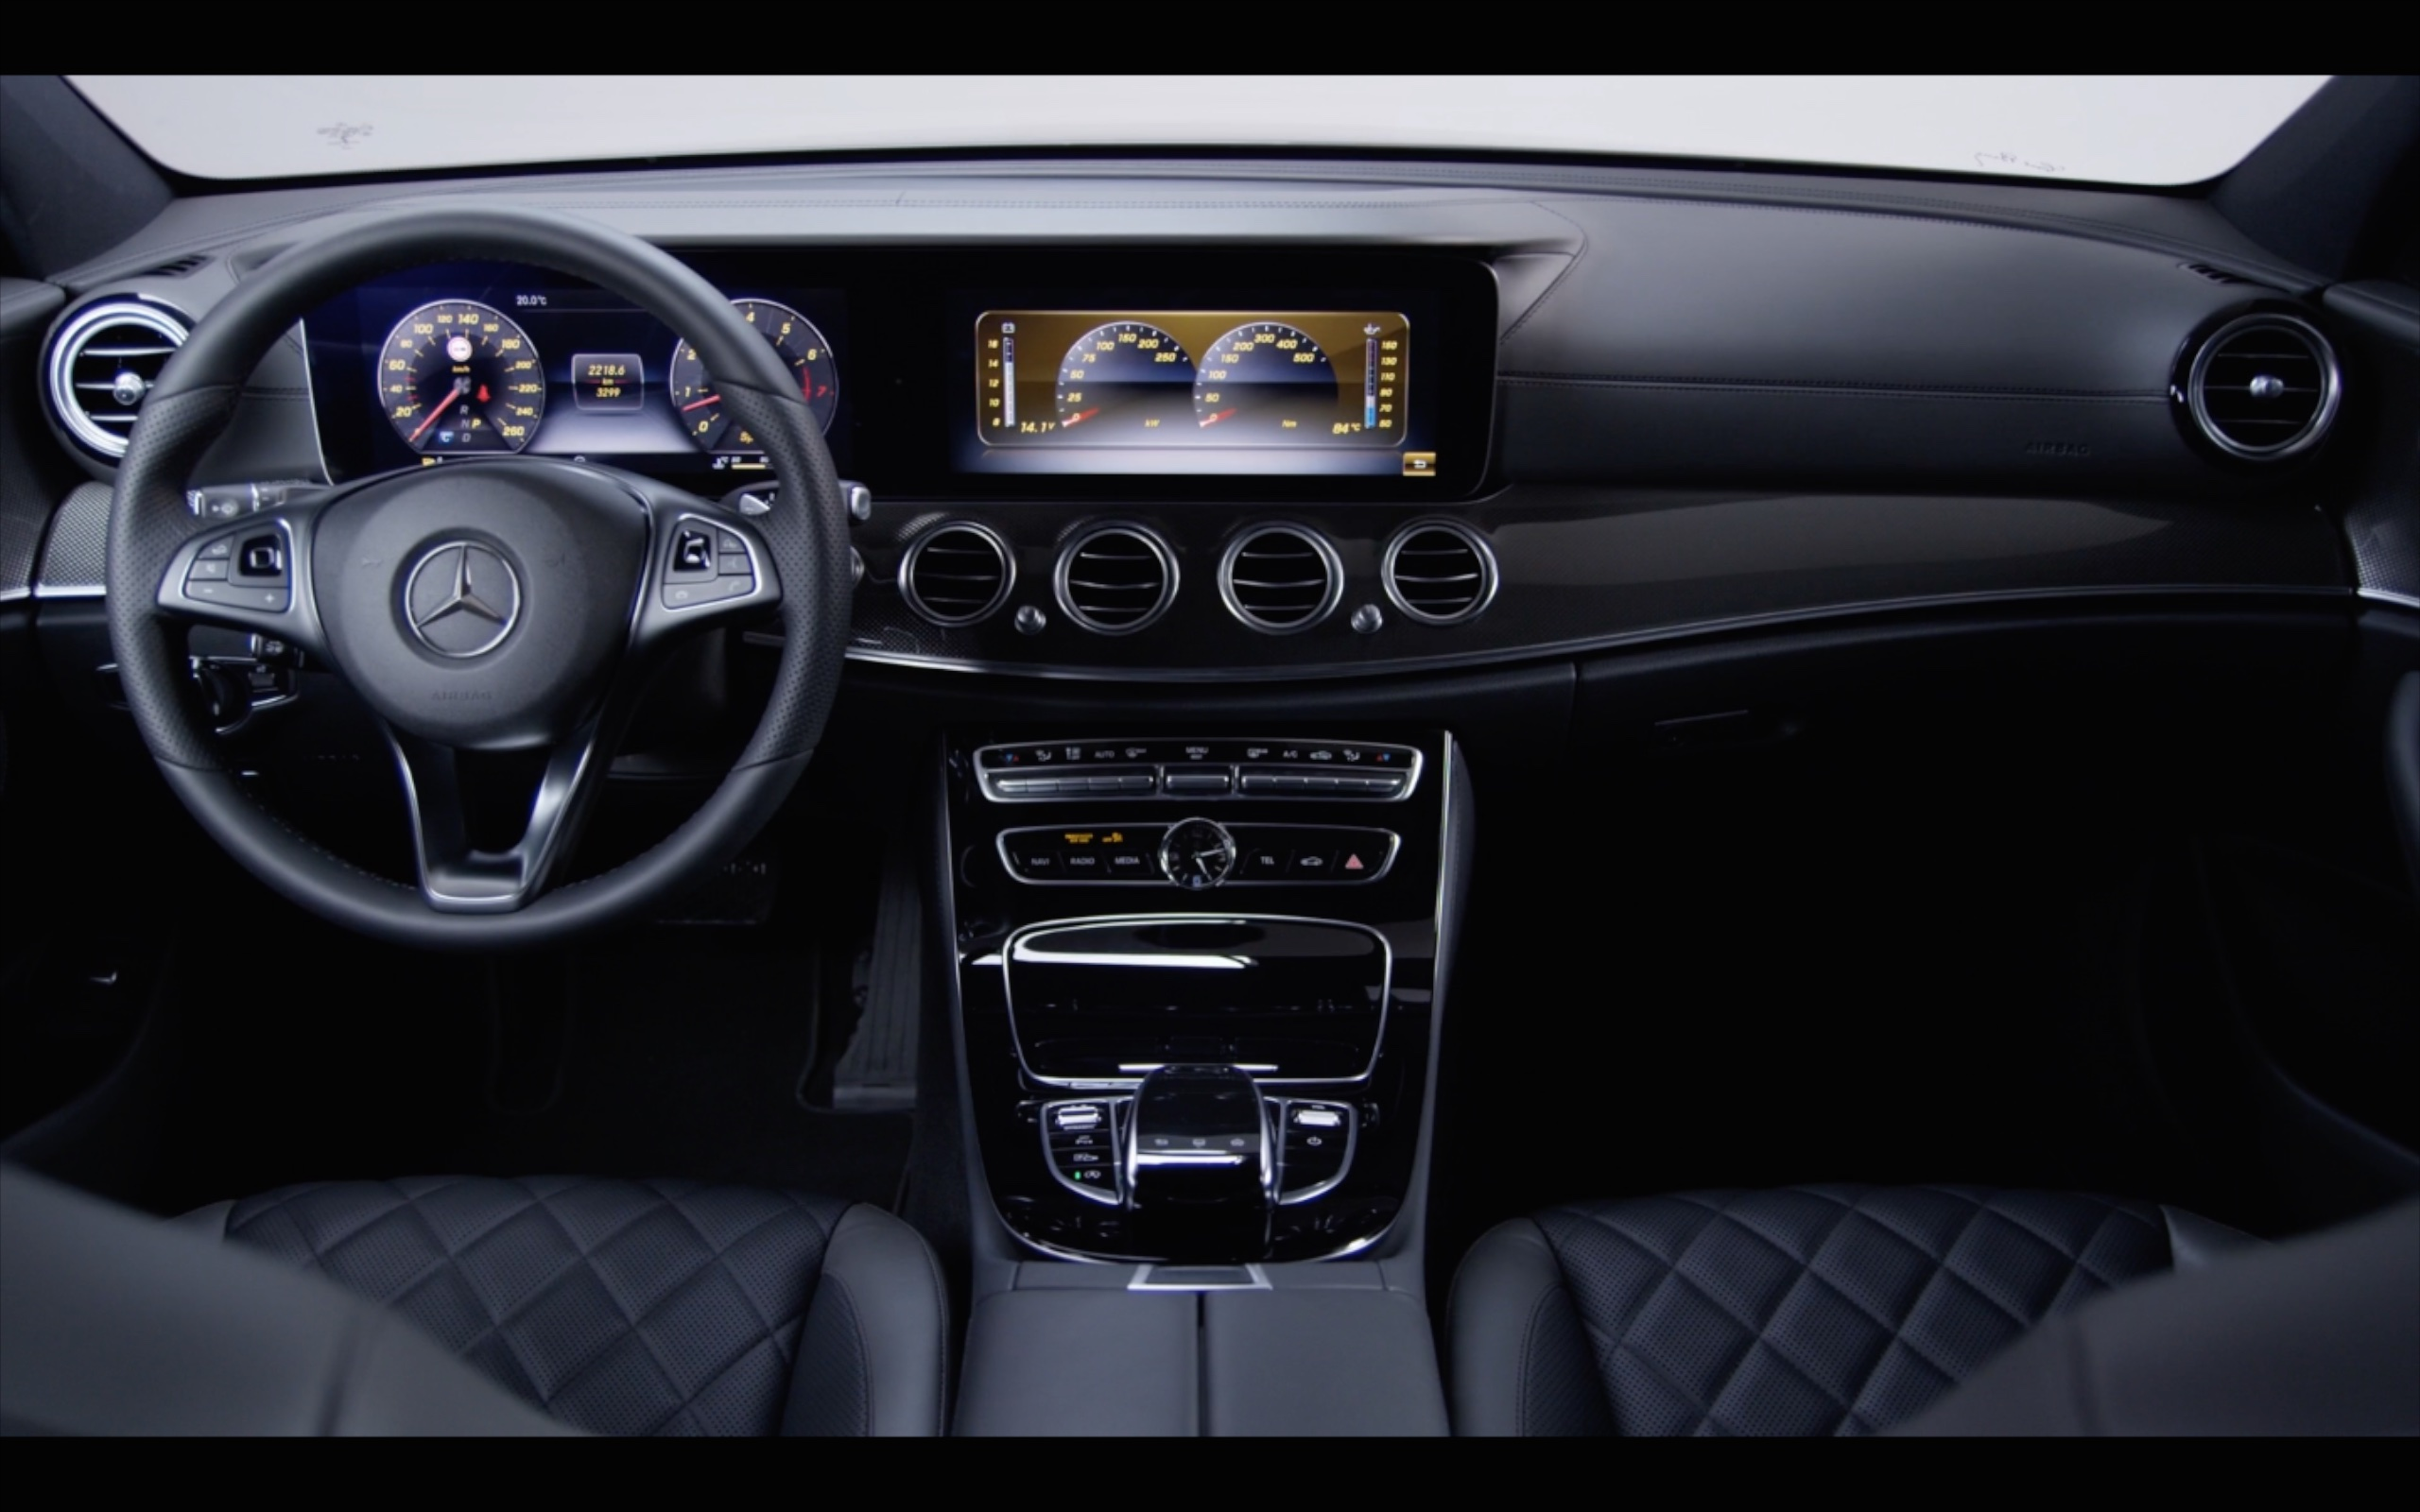 Video W213 Mercedes Benz E Class Interior Detailed Paul Tan Image